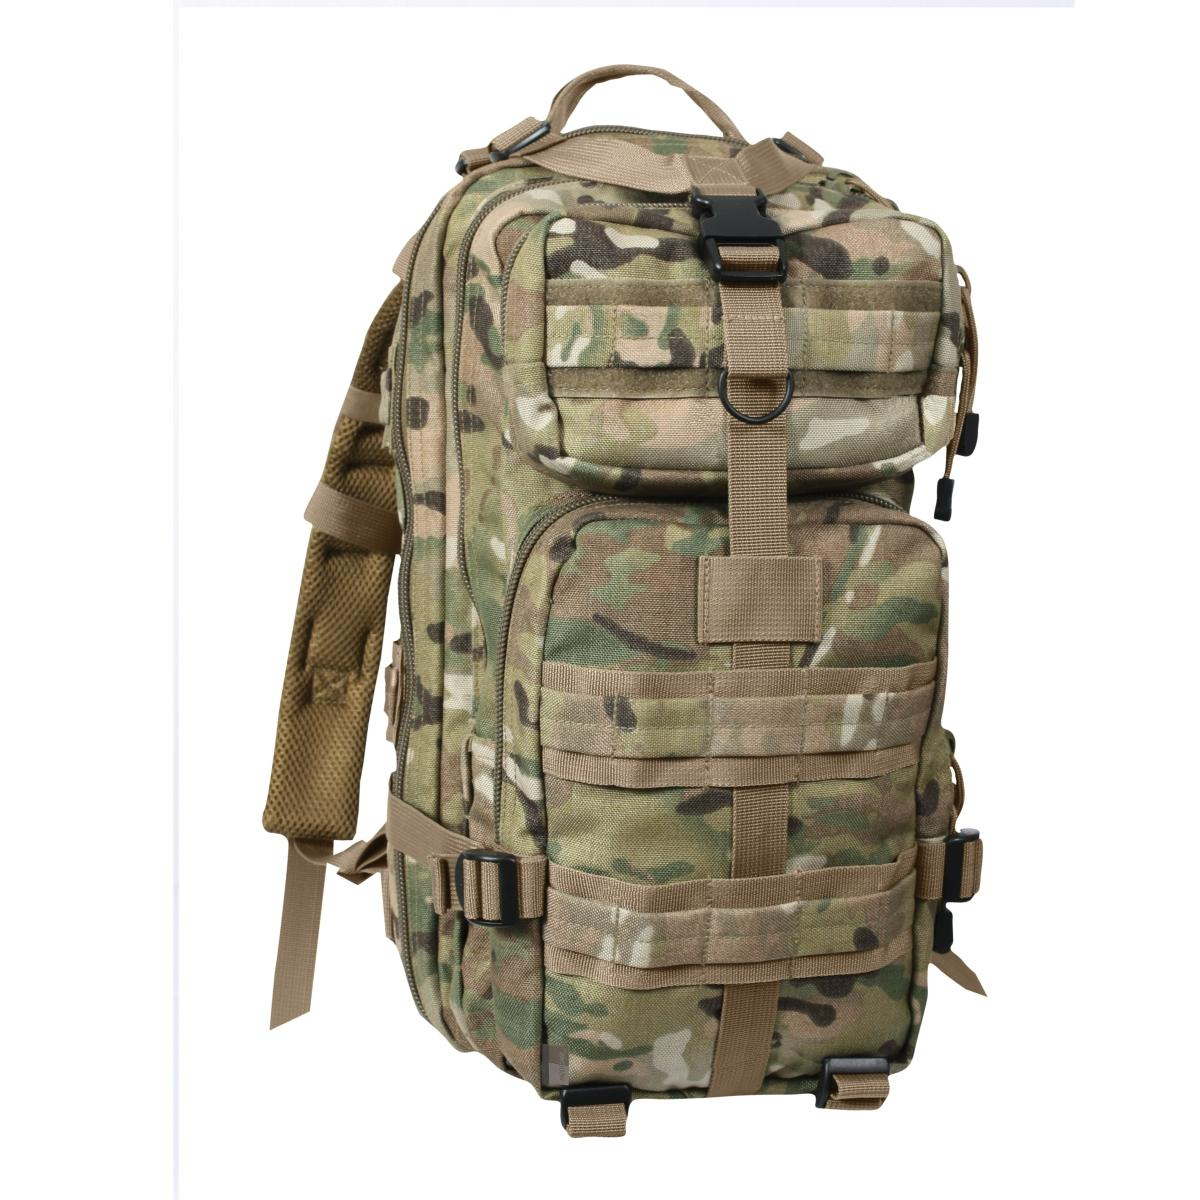 2940 MultiCam Medium Transport Pack